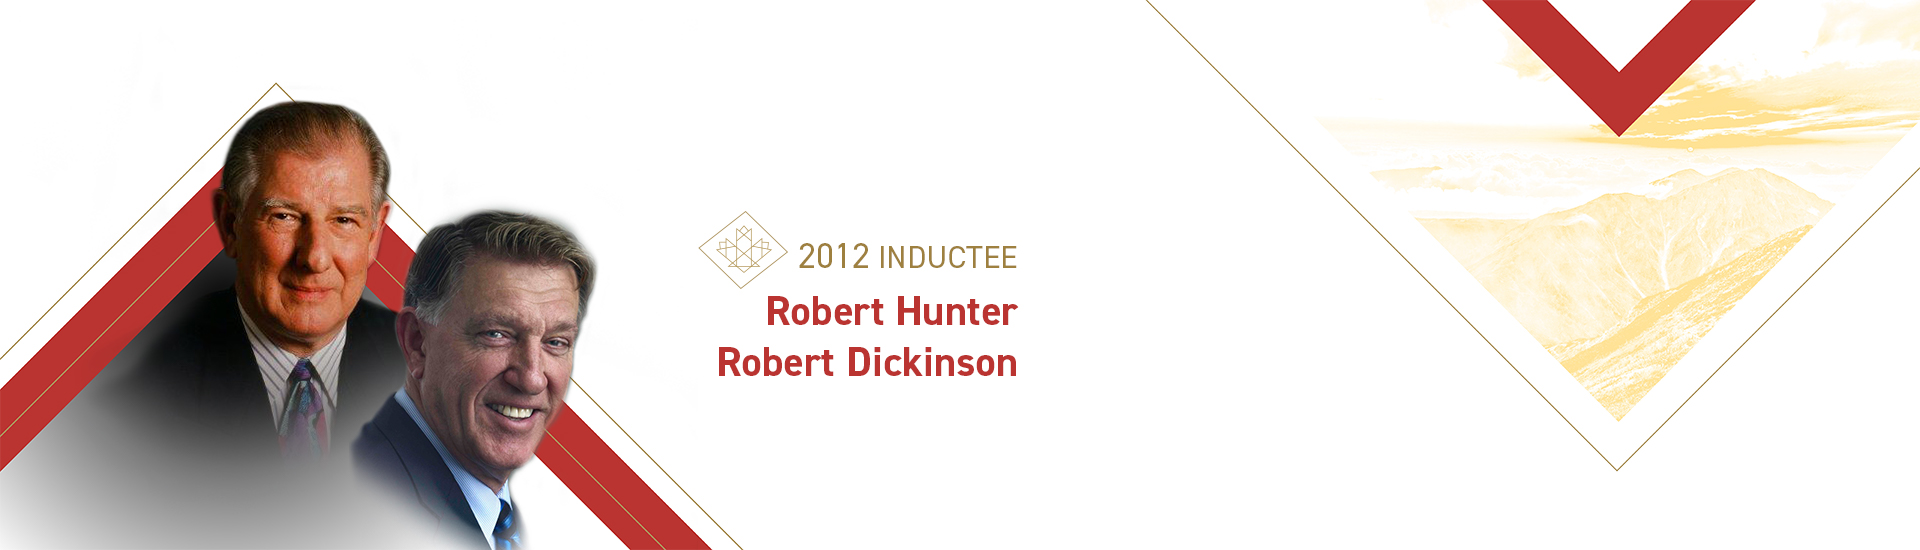 Robert Hunter and Robert Dickinson